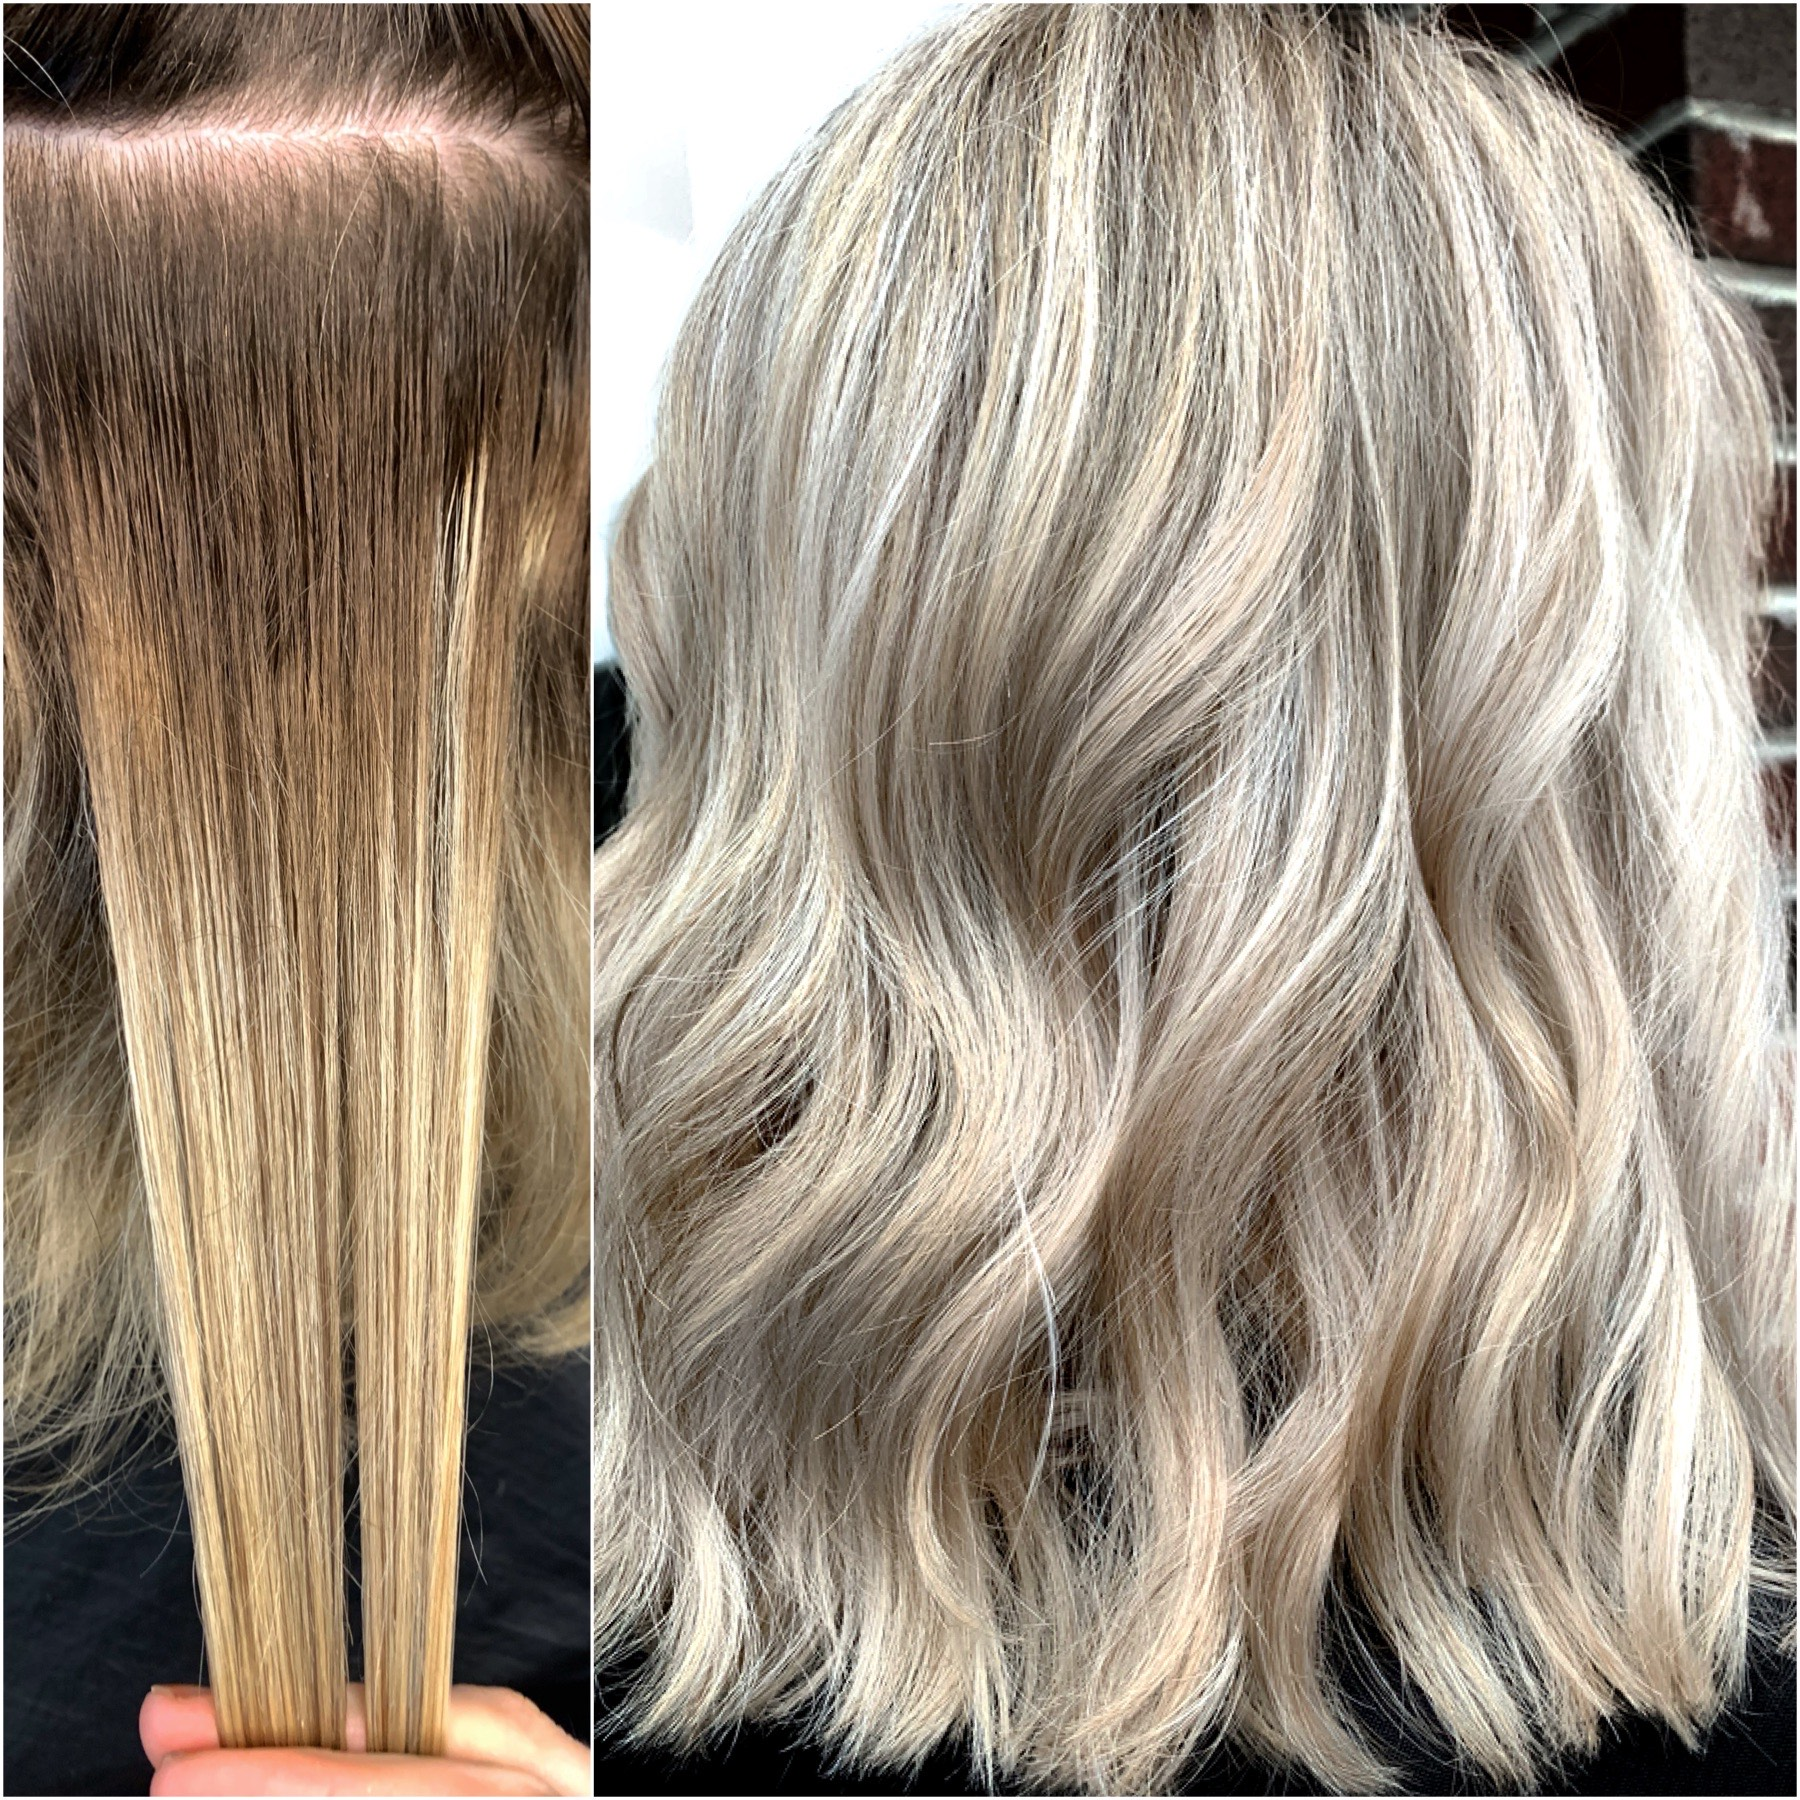 From Uneven and Banded To a Nice Bright Blonde